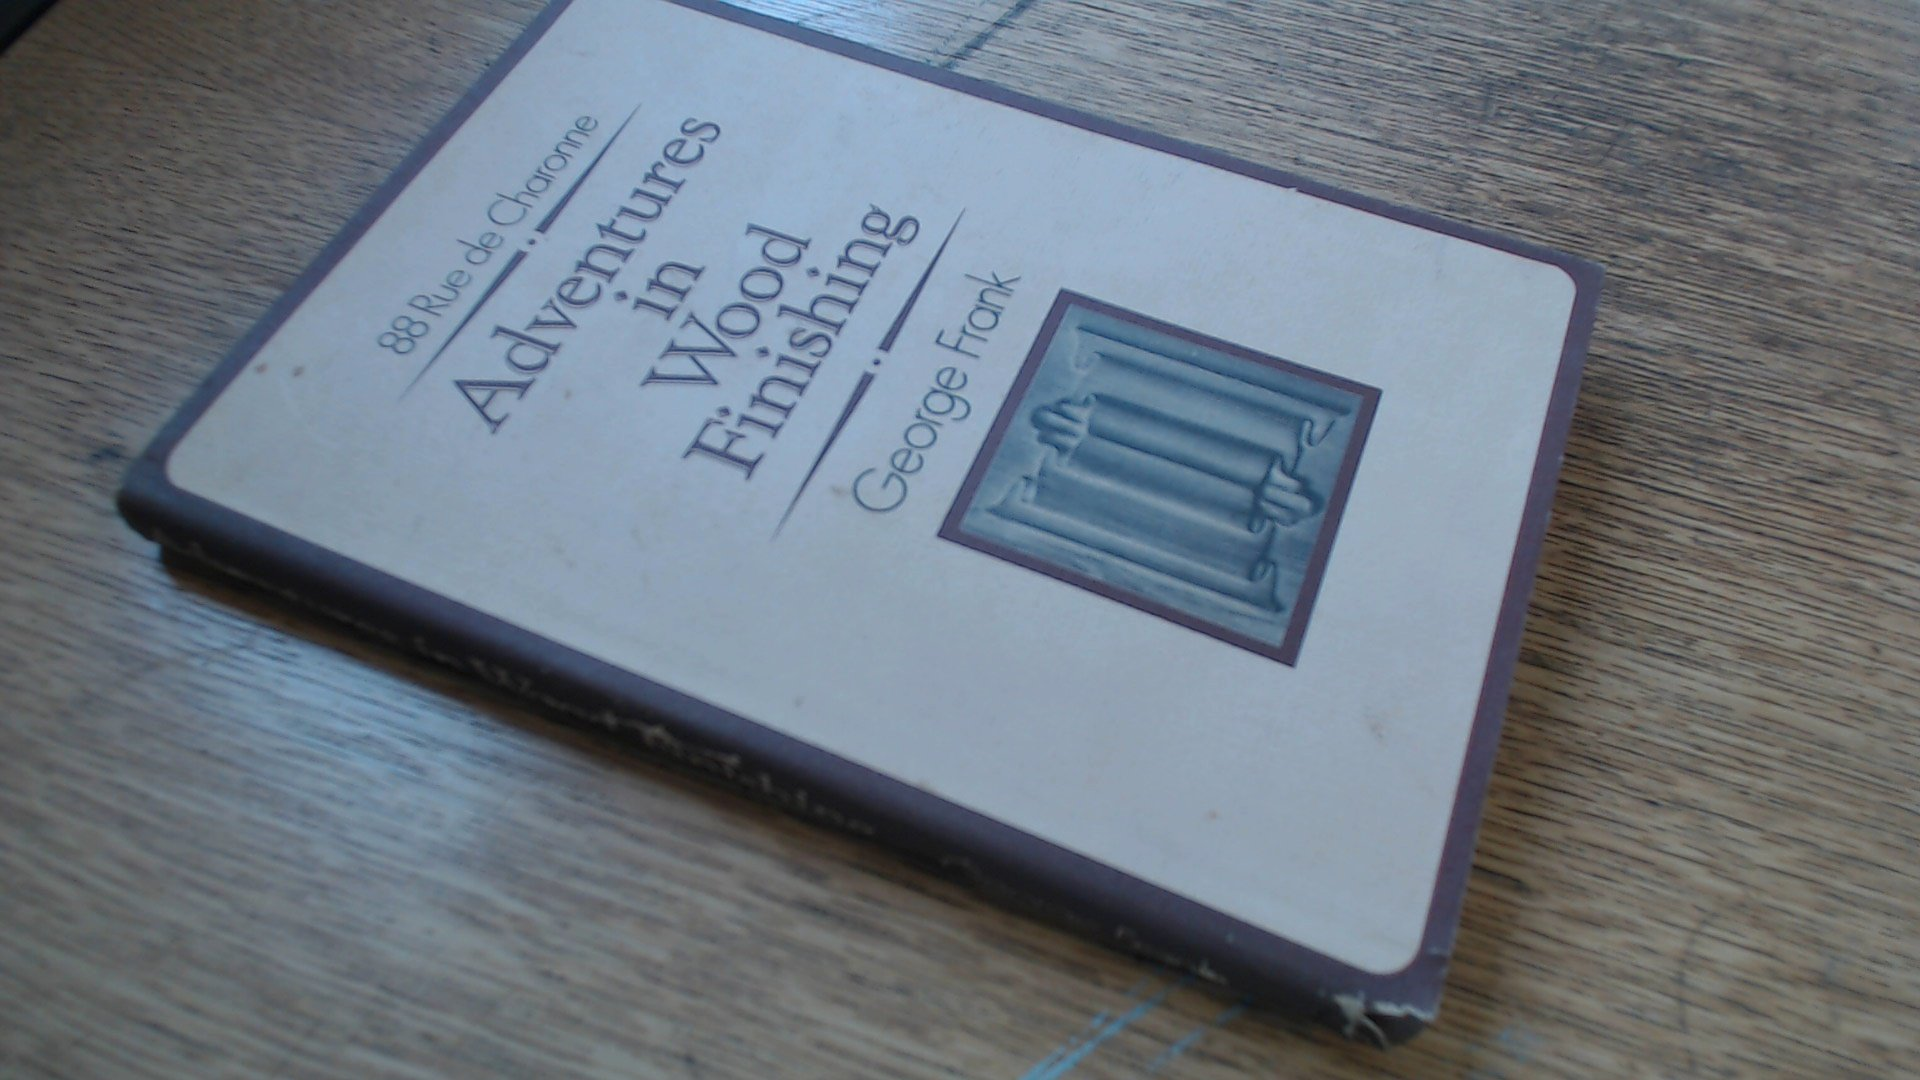 Adventures in Wood Finishing: 88 Rue de Charonne (A Fine woodworking book)